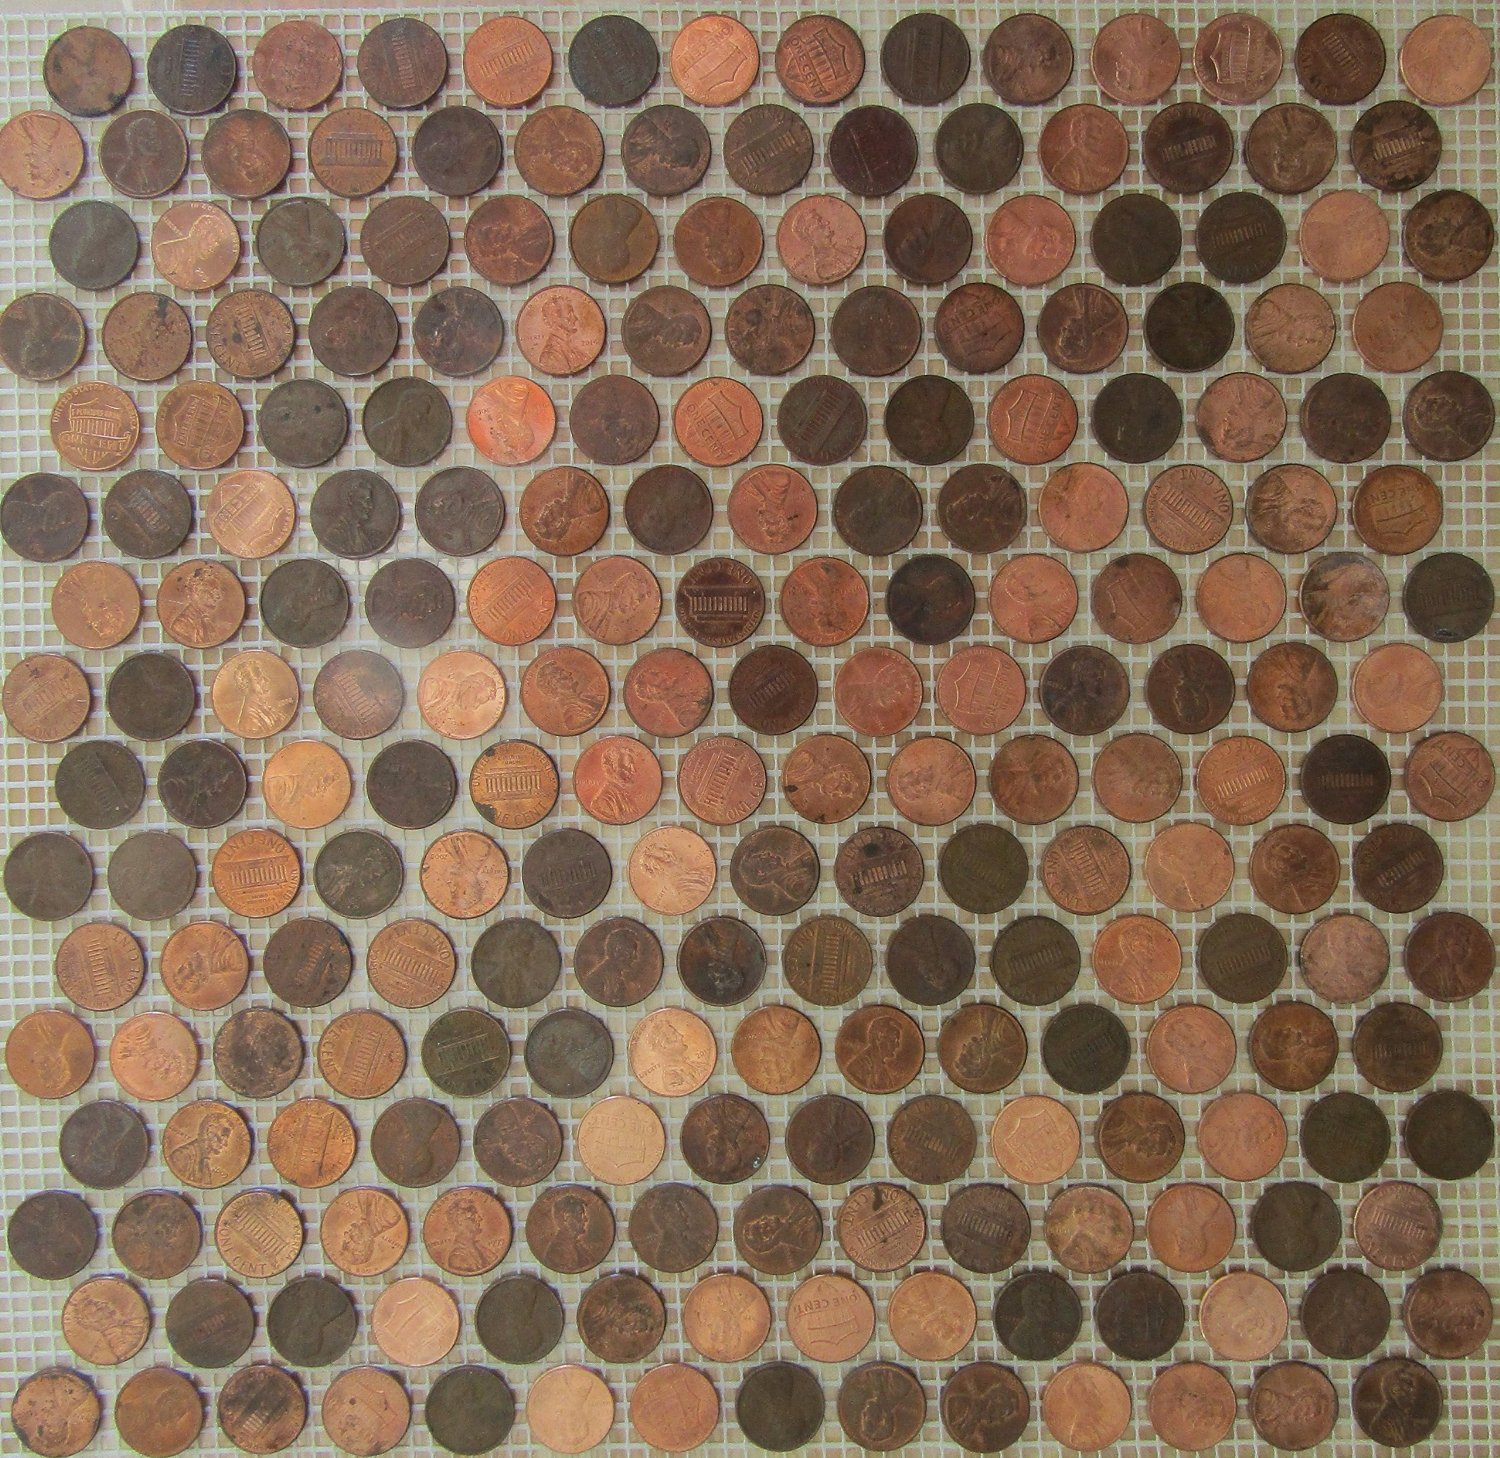 Cheap penny round tile floor find penny round tile floor deals on get quotations copper zinc penny round coin tile sheets for floor or wall art by stone deals dailygadgetfo Image collections